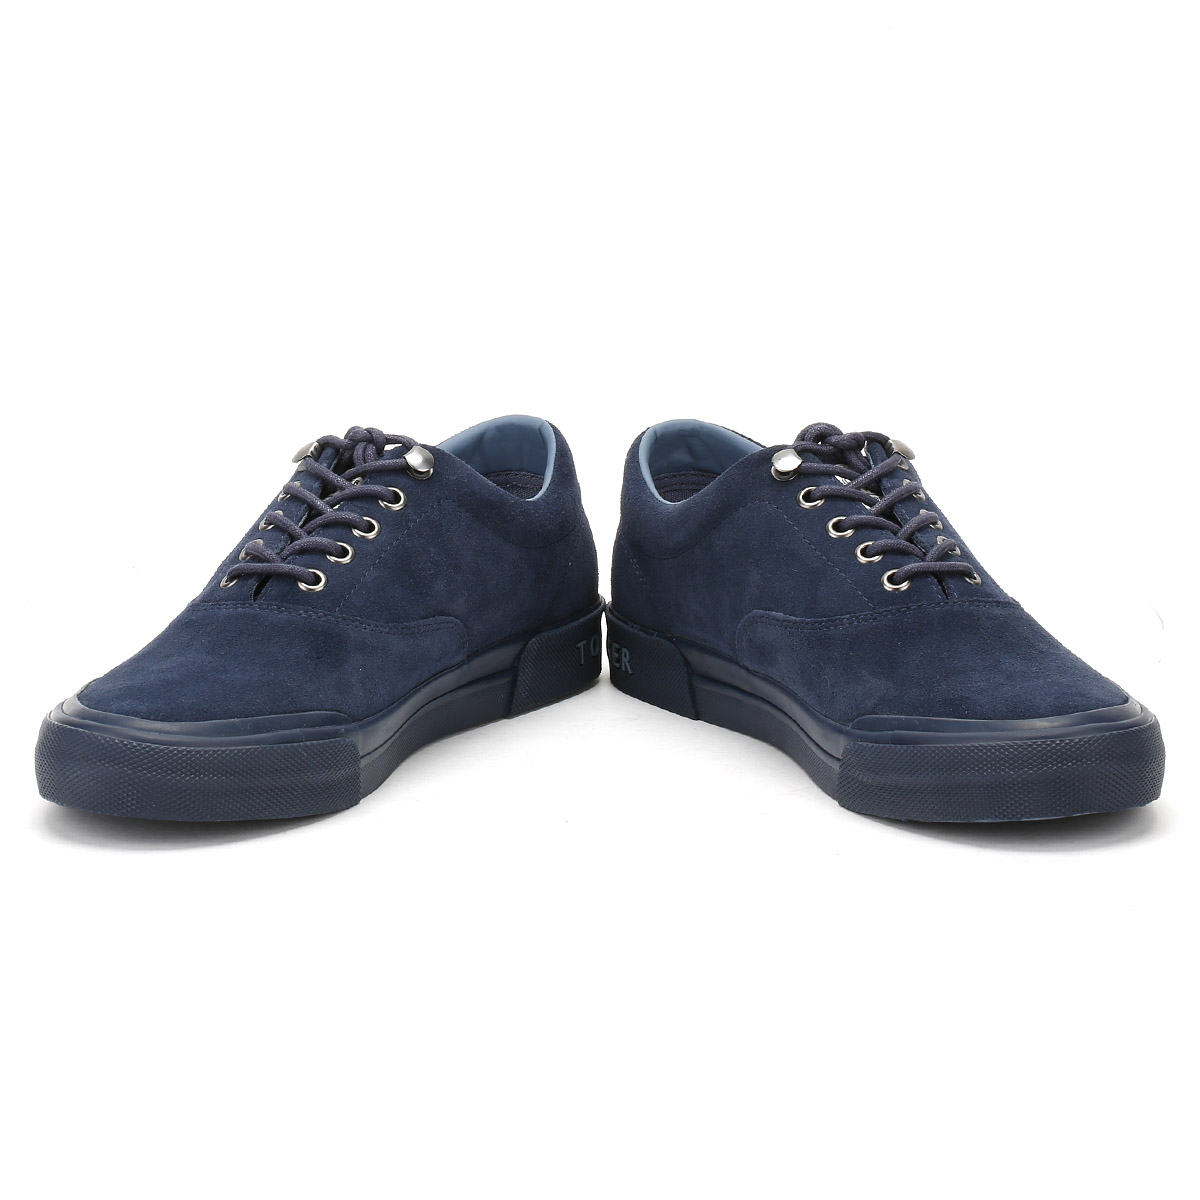 c16bfa126 Tommy Hilfiger Mens Navy Blue Suede Trainers Lace Up Sport Shoes  Y2285ARMOUTH